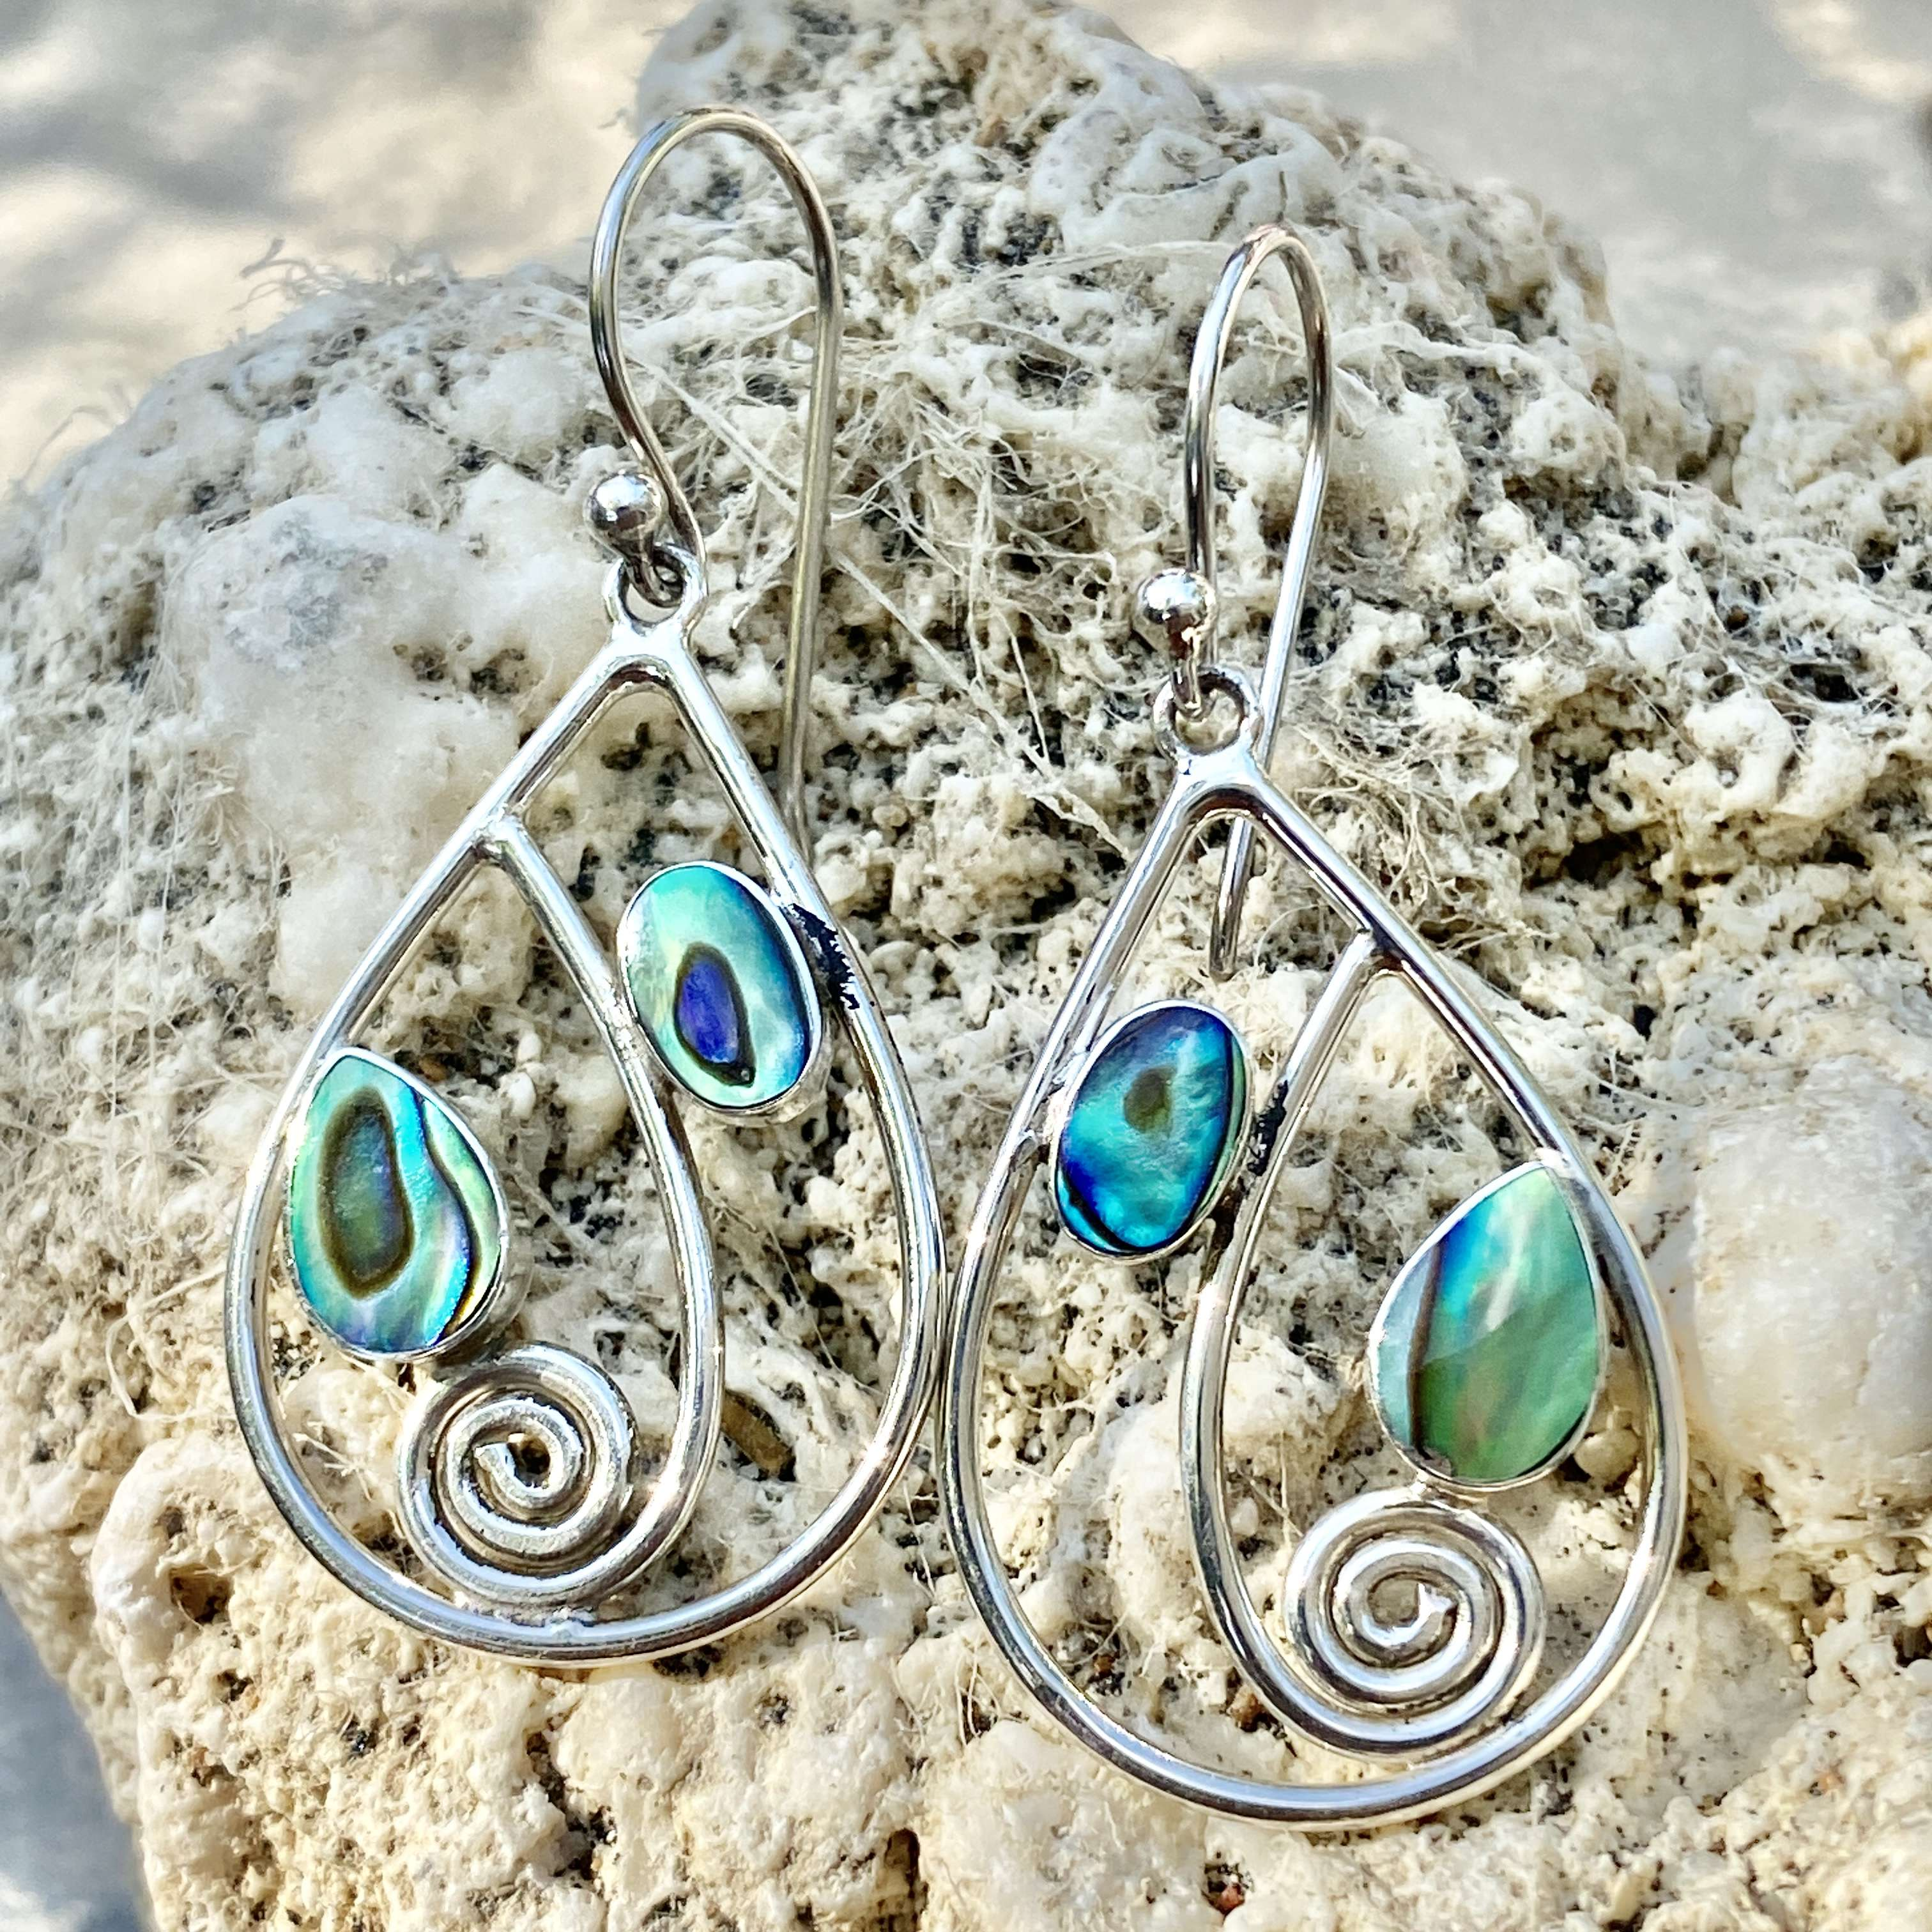 (Beautiful Handmade 925 Bali Sterling Silver Earrings with ABALONE)